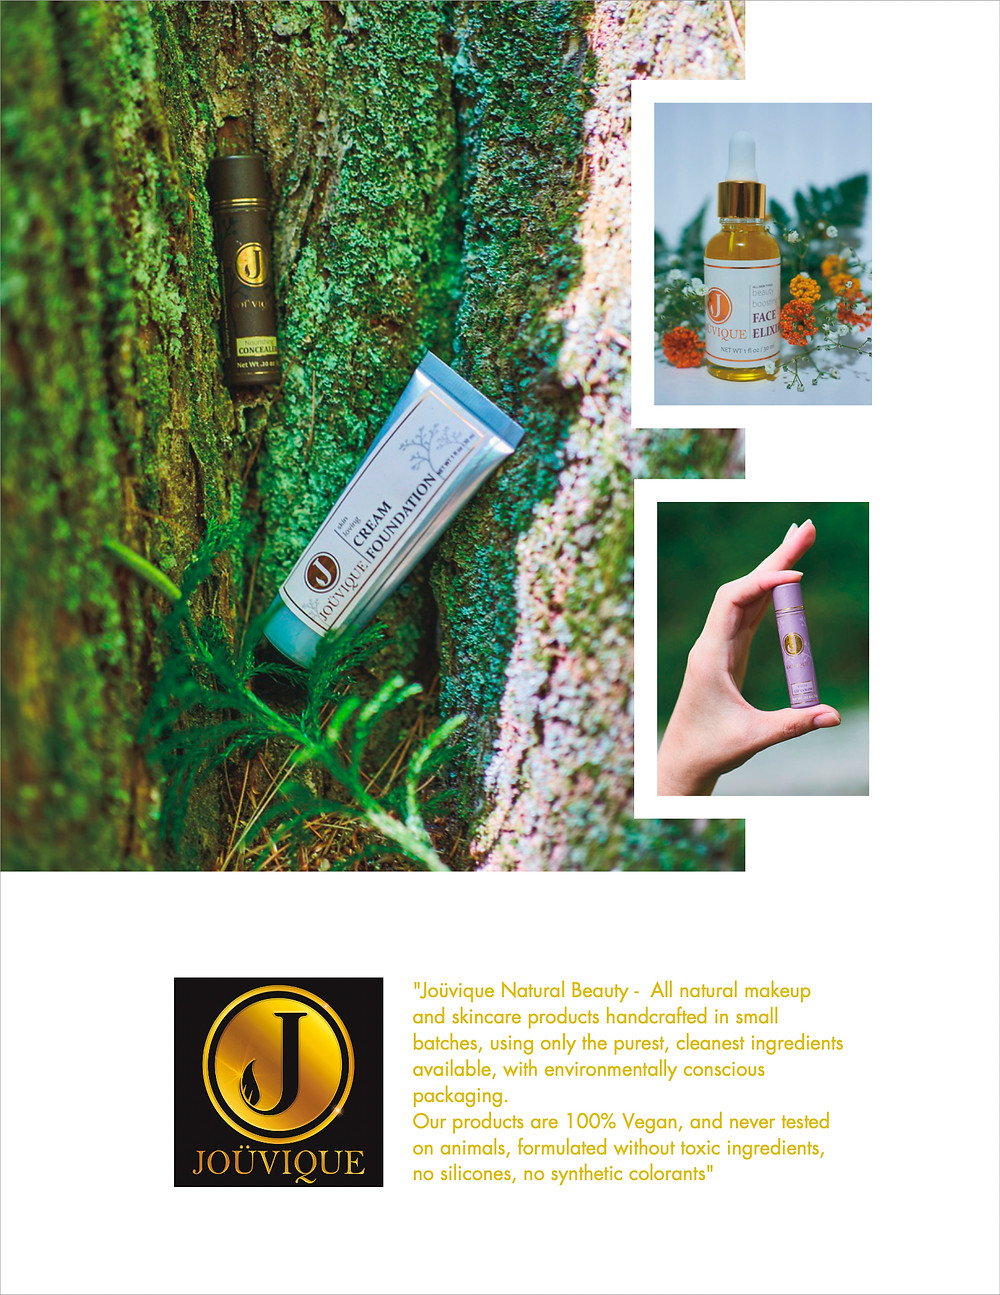 """""""Joüvique Natural Beauty -  All natural makeup and skincare products handcrafted in small batches, using only the purest, cleanest ingredients available, with environmentally conscious packaging. Our products are 100% Vegan, and never tested on animals, formulated without toxic ingredients, no silicones, no synthetic colorants"""""""